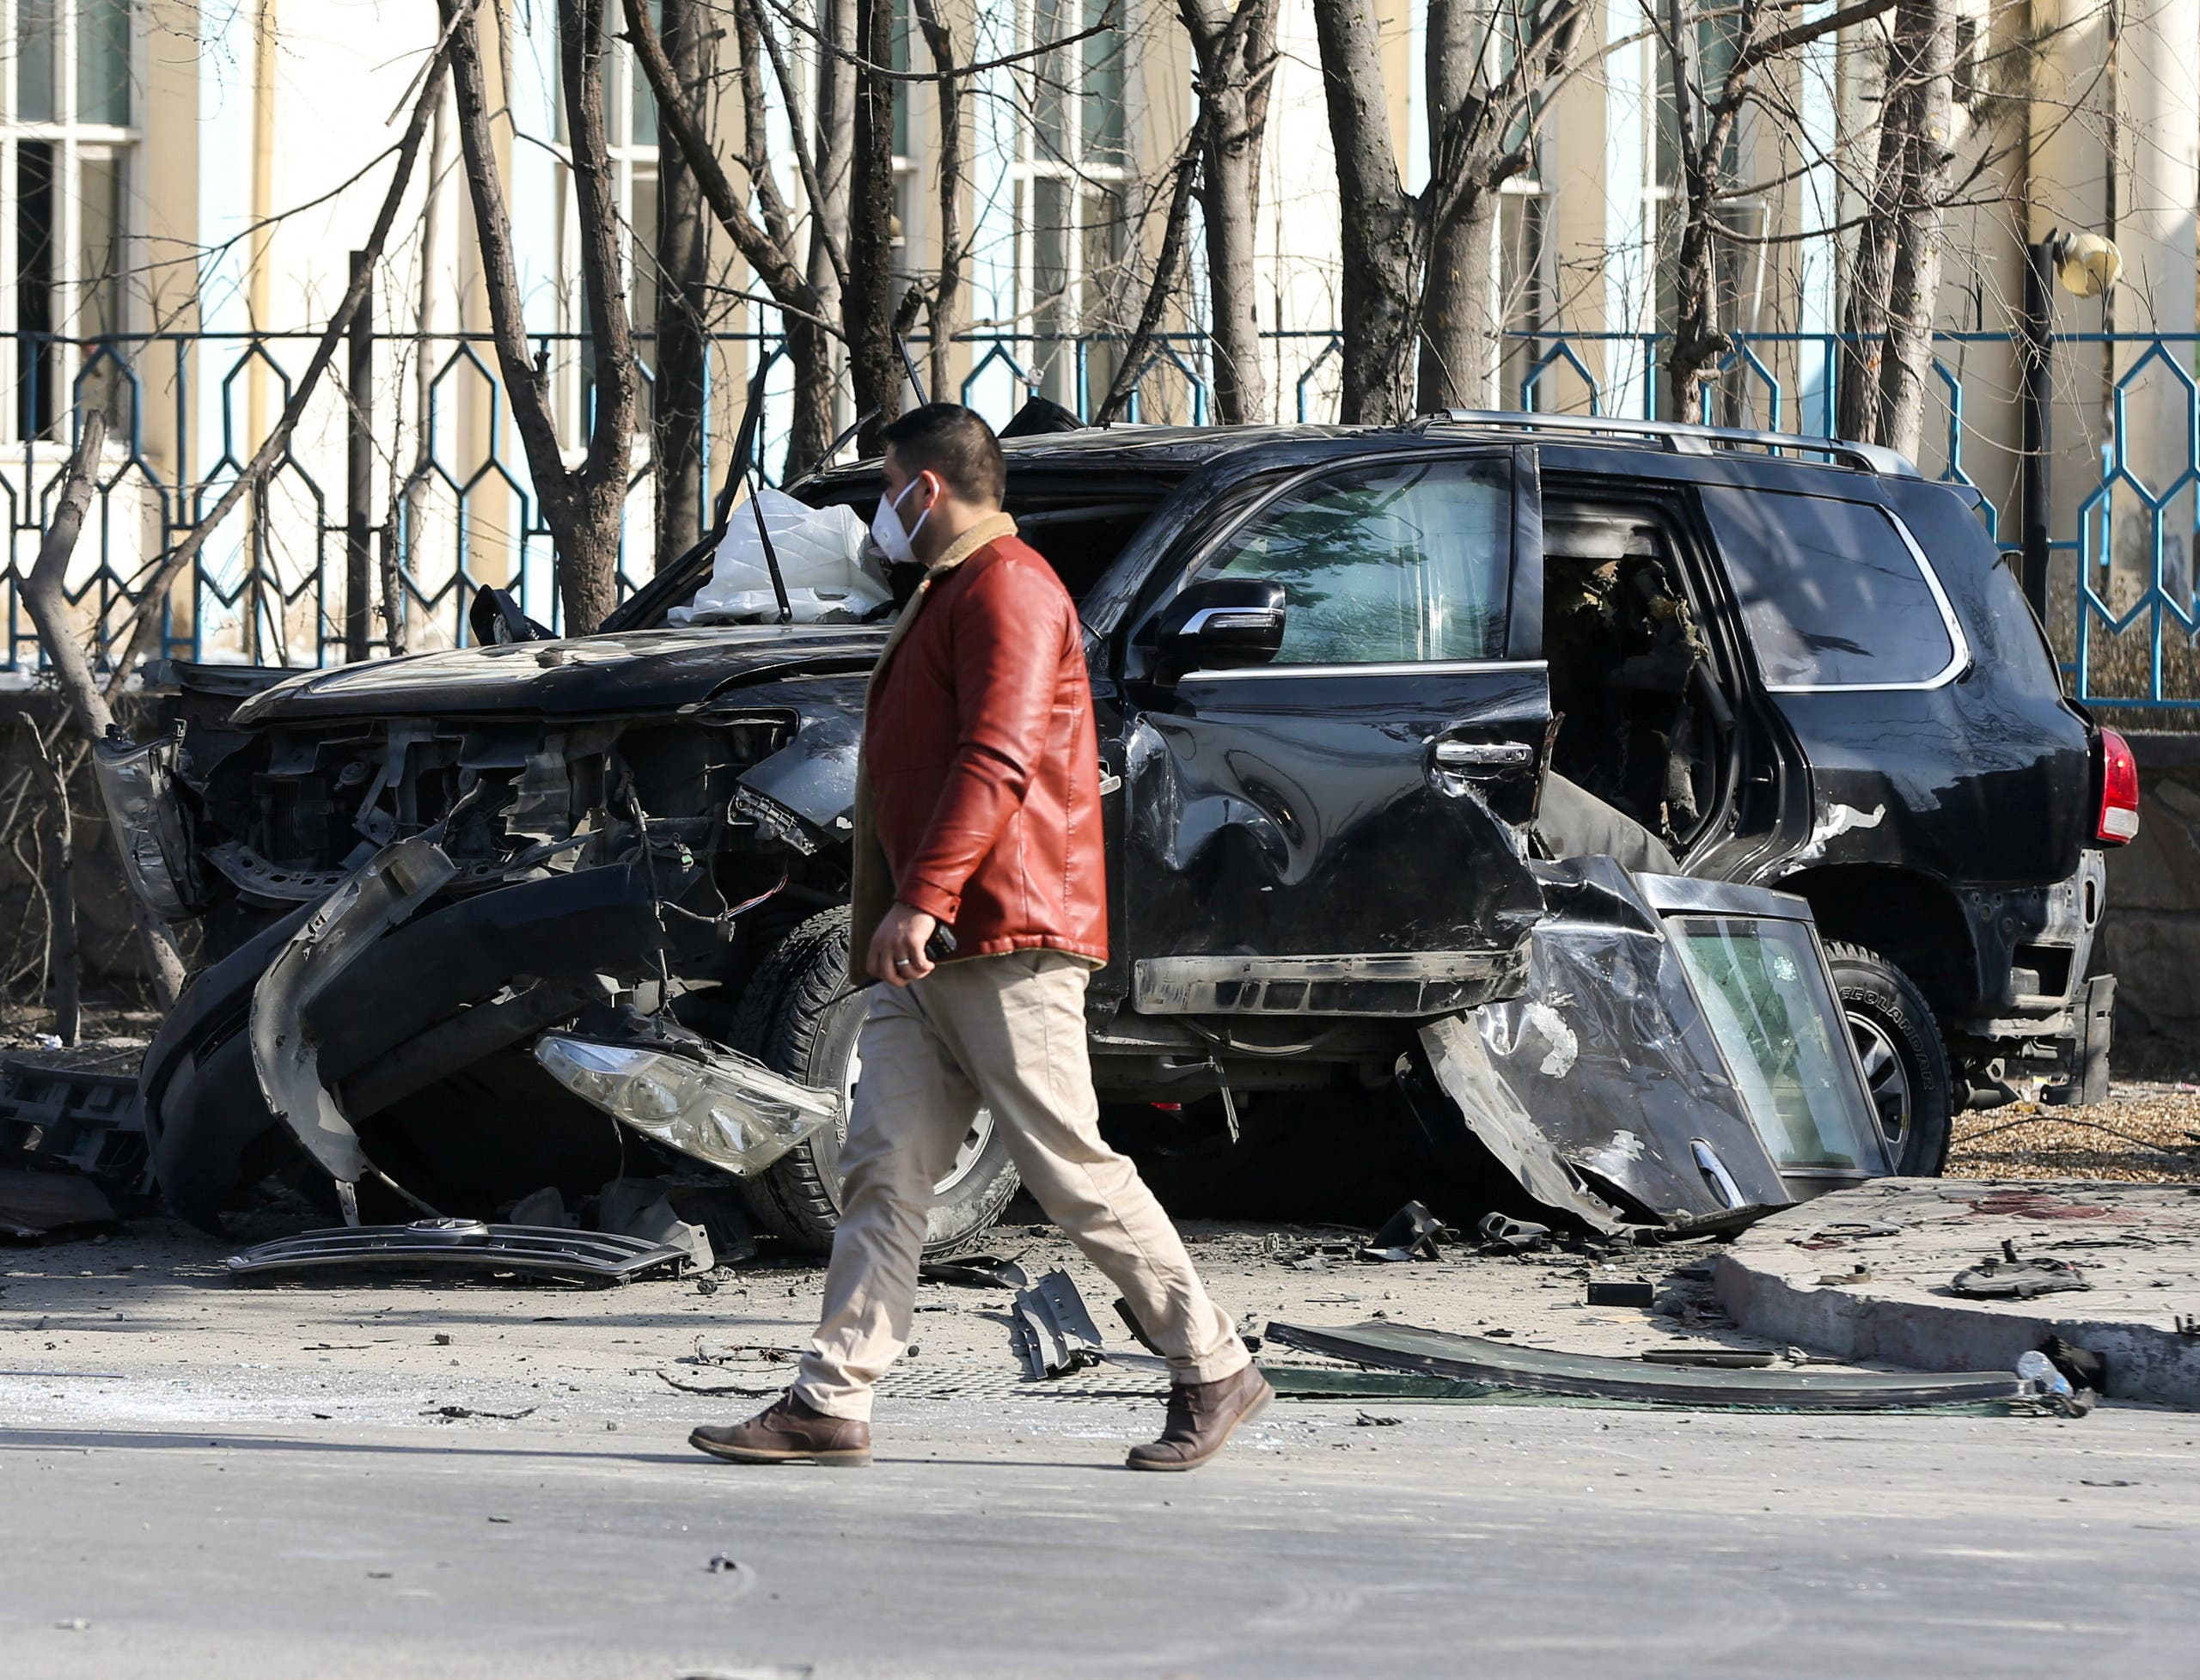 An Afghan security official inspects the site of a bomb blast in Kabul, Afghanistan February 9, 2021. (Reuters/Omar Sobhani)